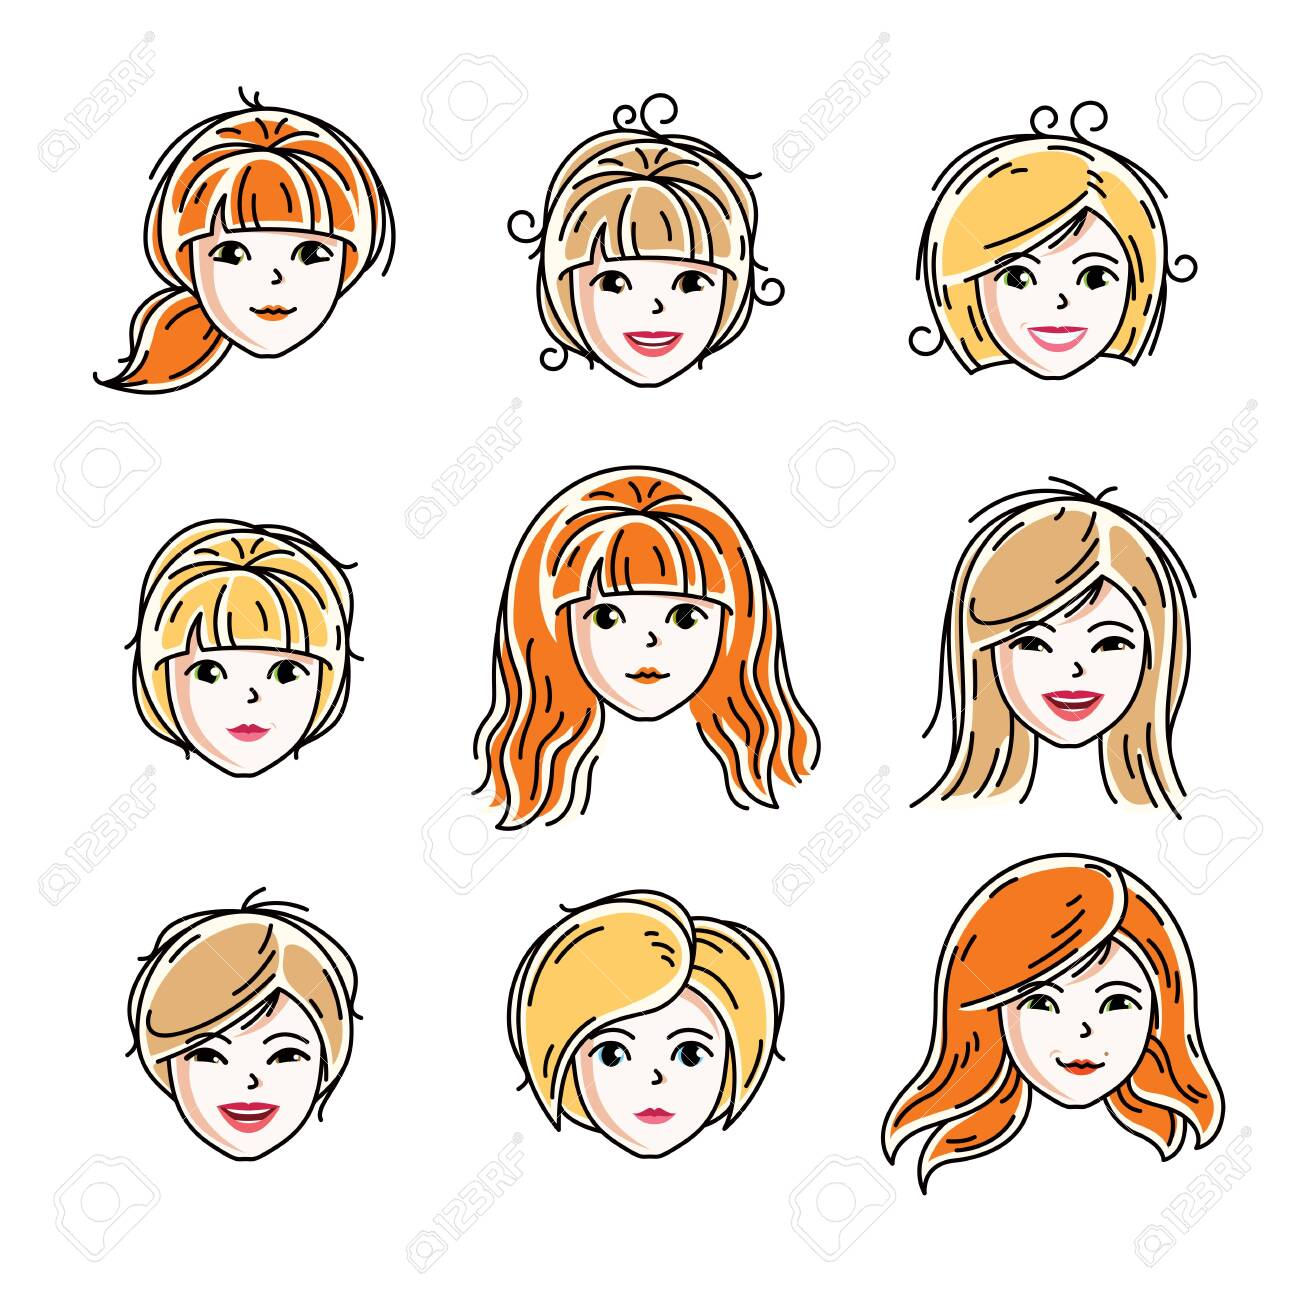 Set of women faces, human heads. Different vector characters like redhead and blonde females, attractive ladies face features collection. - 122422182